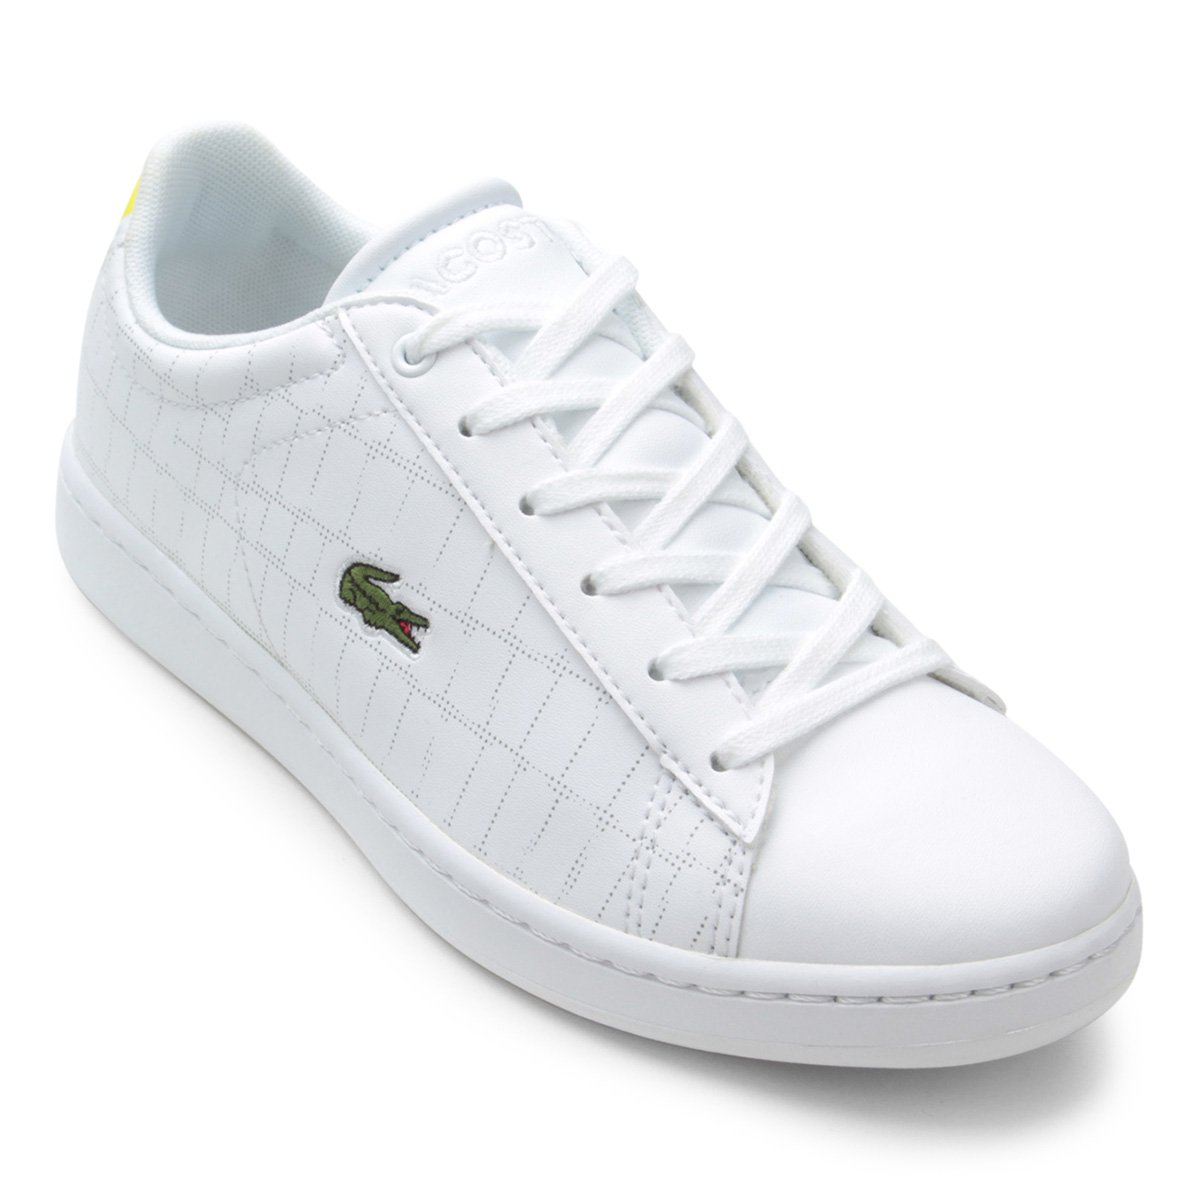 6cd21051c1751 Tênis Lacoste Infantil Carnaby - Compre Agora   Netshoes